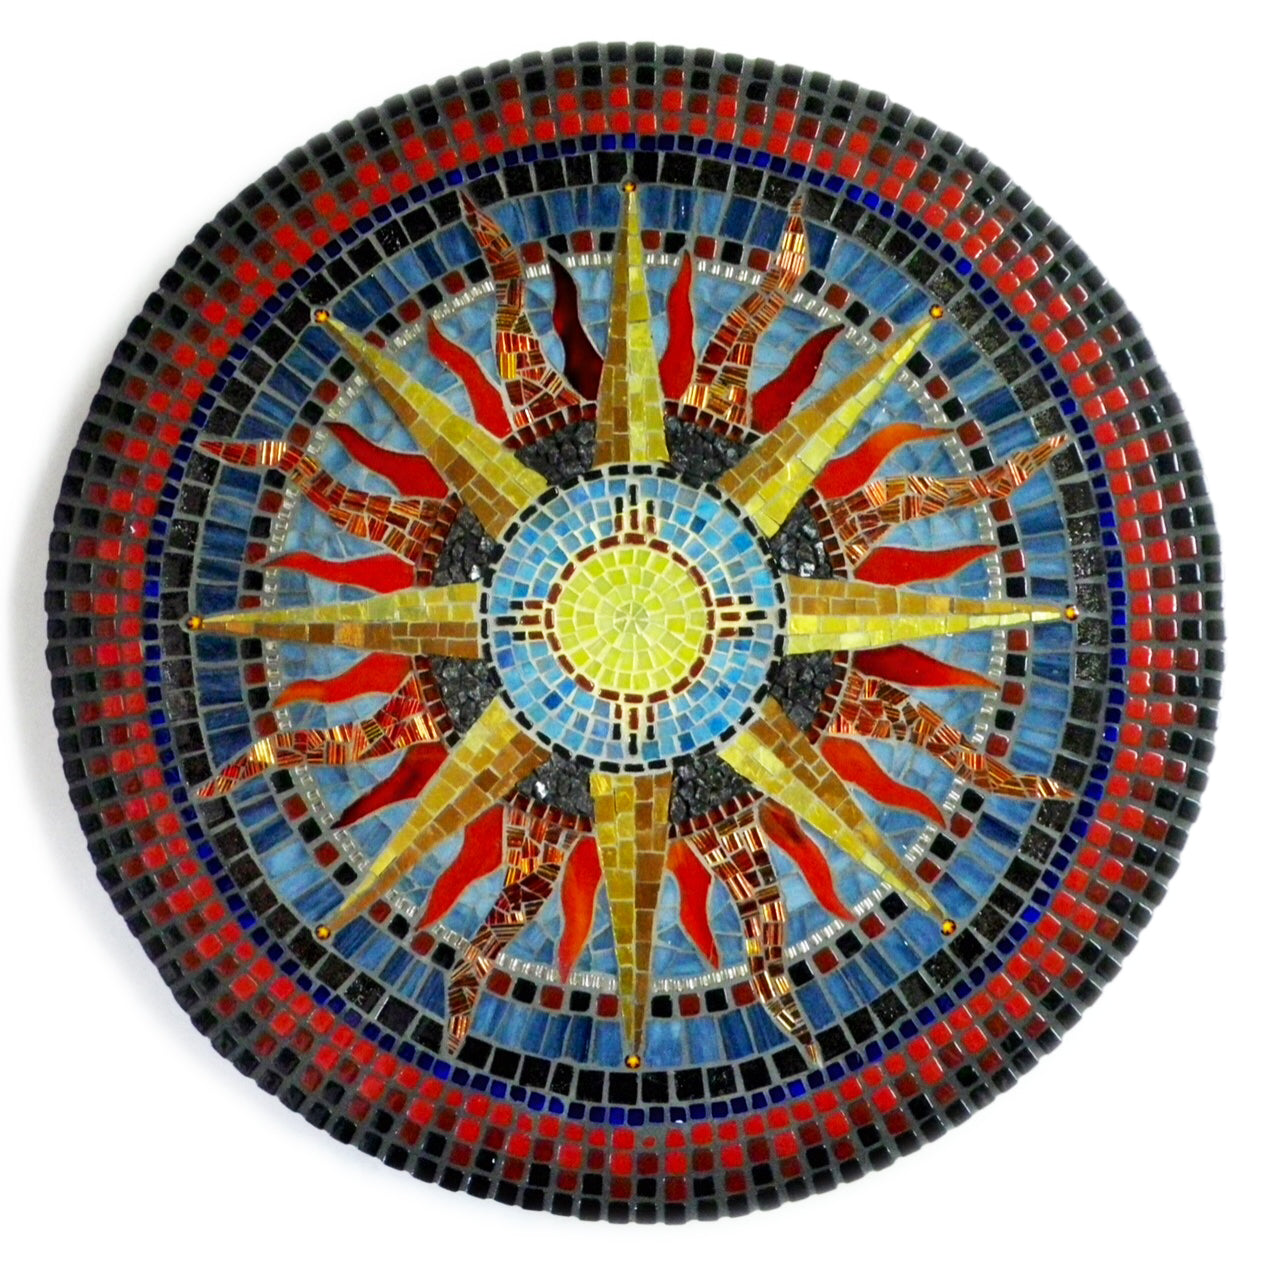 """The Same Sun""  by Dianne Sonnenberg - 16"" mosaic mandala. Stained glass, glass tile, beads. Dichroic glass, murrini, granite, 24K Gold Tile.  For my brother, who reminds me that no matter how far apart we are, when we look up into the sky, we see the same moon and the same sun."